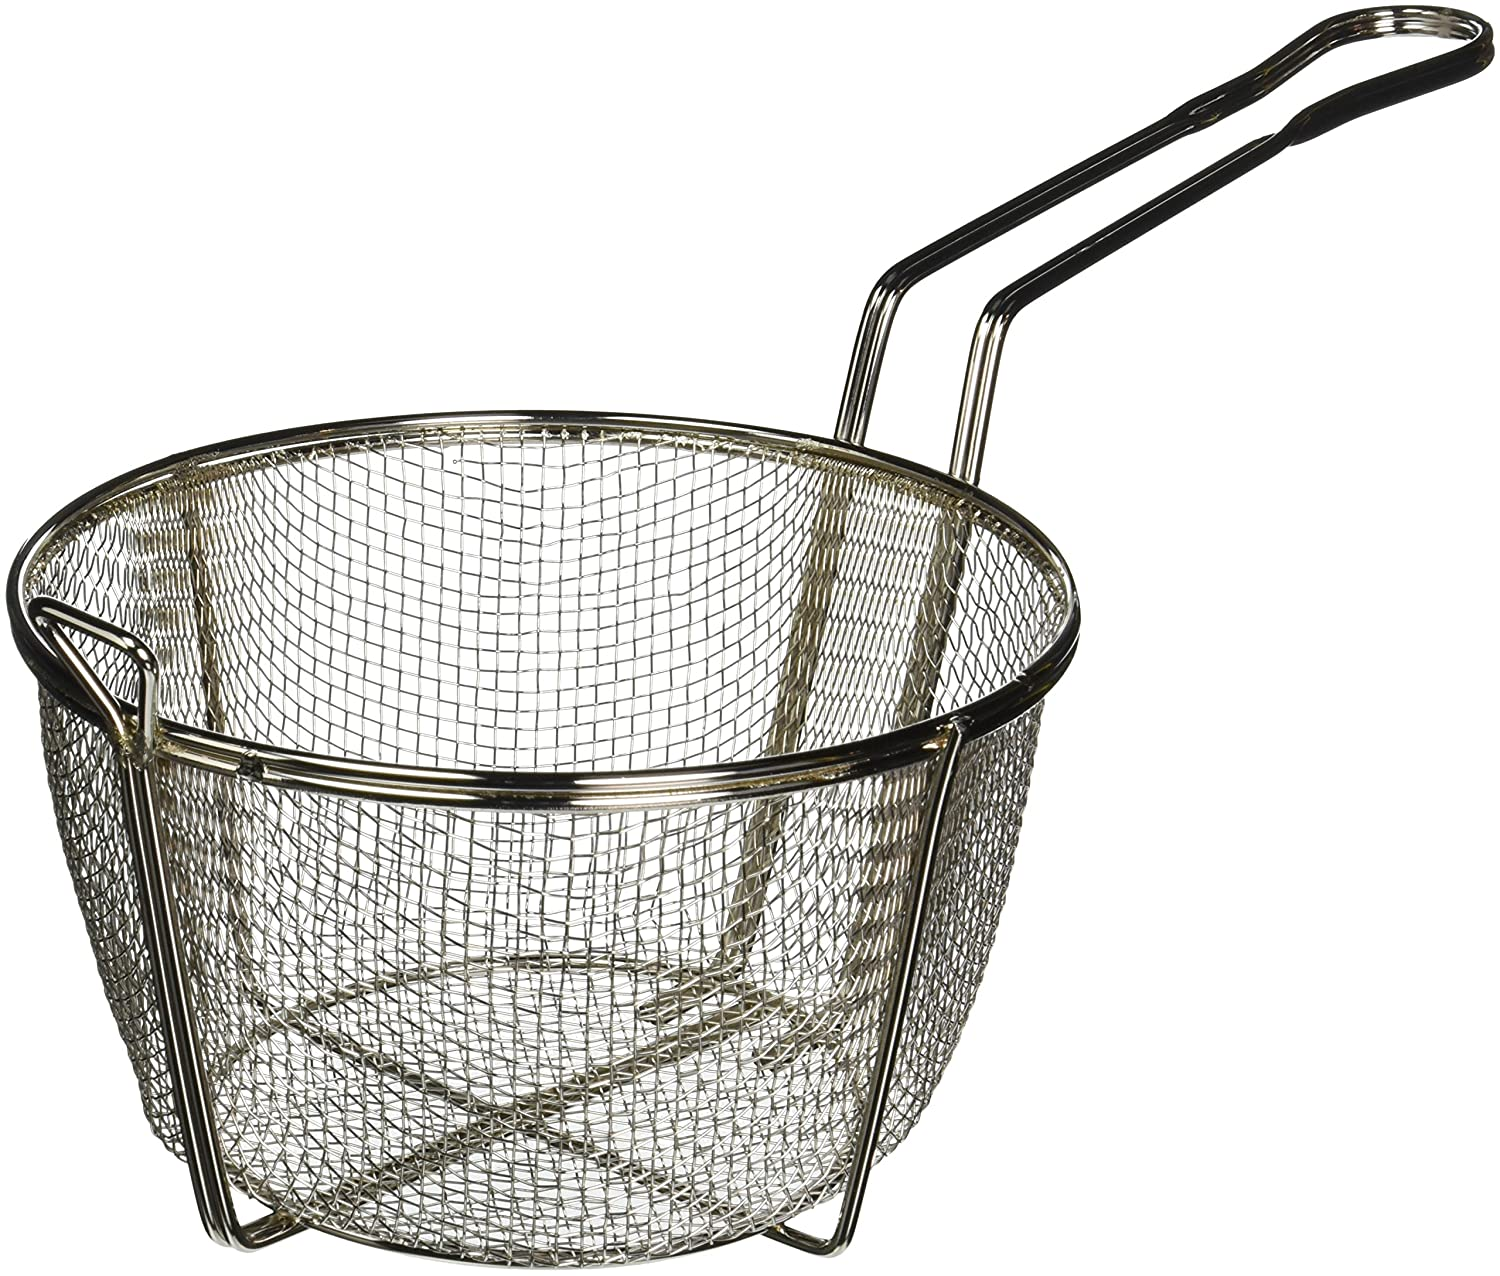 Winco FBRS-8 Round Wire Fry Basket, 8-1/2-Inch, 6-Mesh